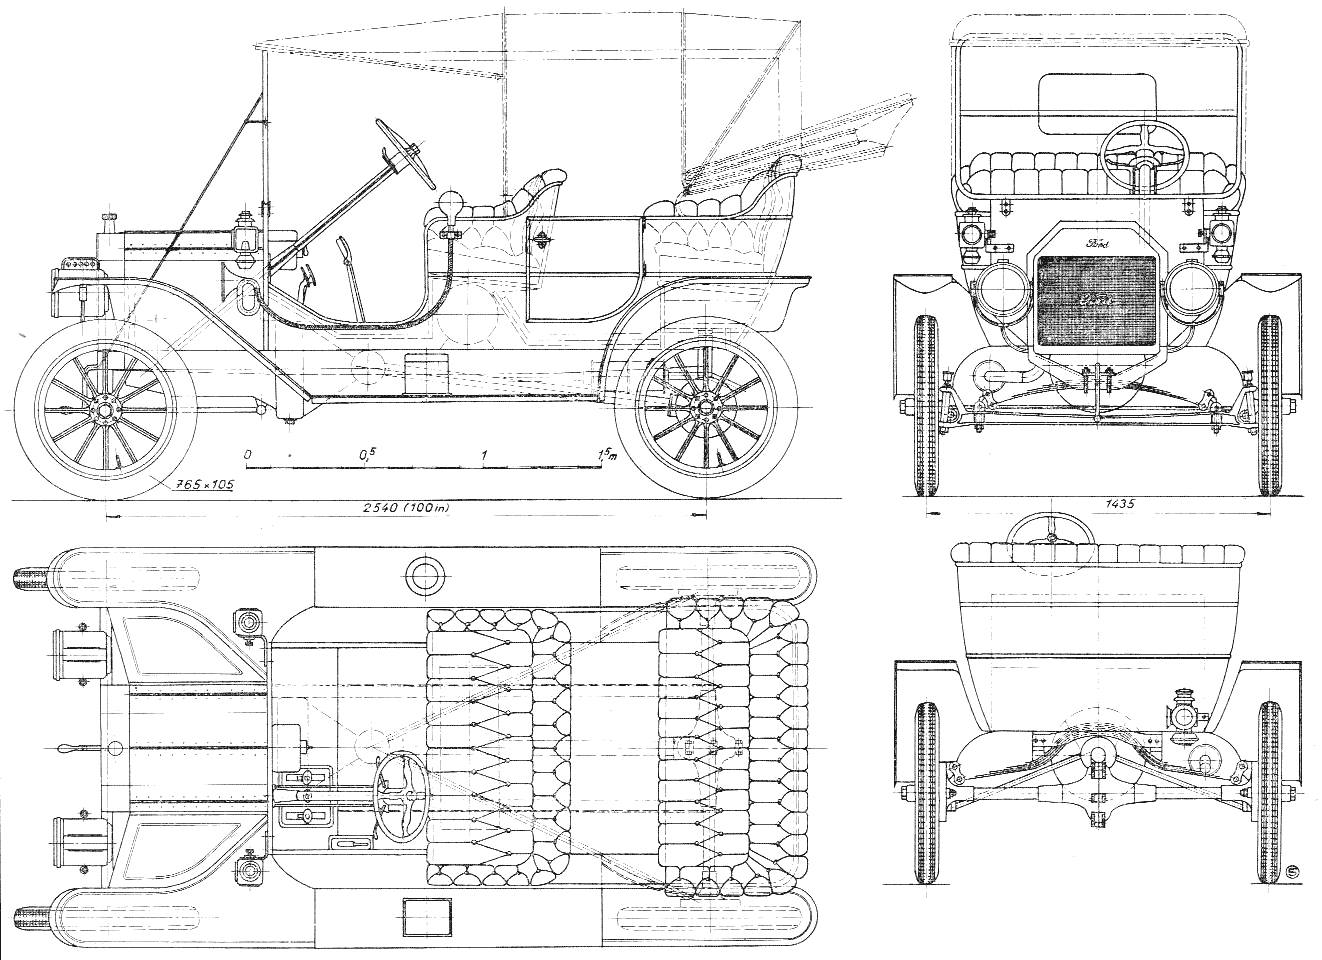 ford model t schematic image diy enthusiasts wiring diagrams u2022 1926 model t wiring diagram ford [ 1322 x 960 Pixel ]